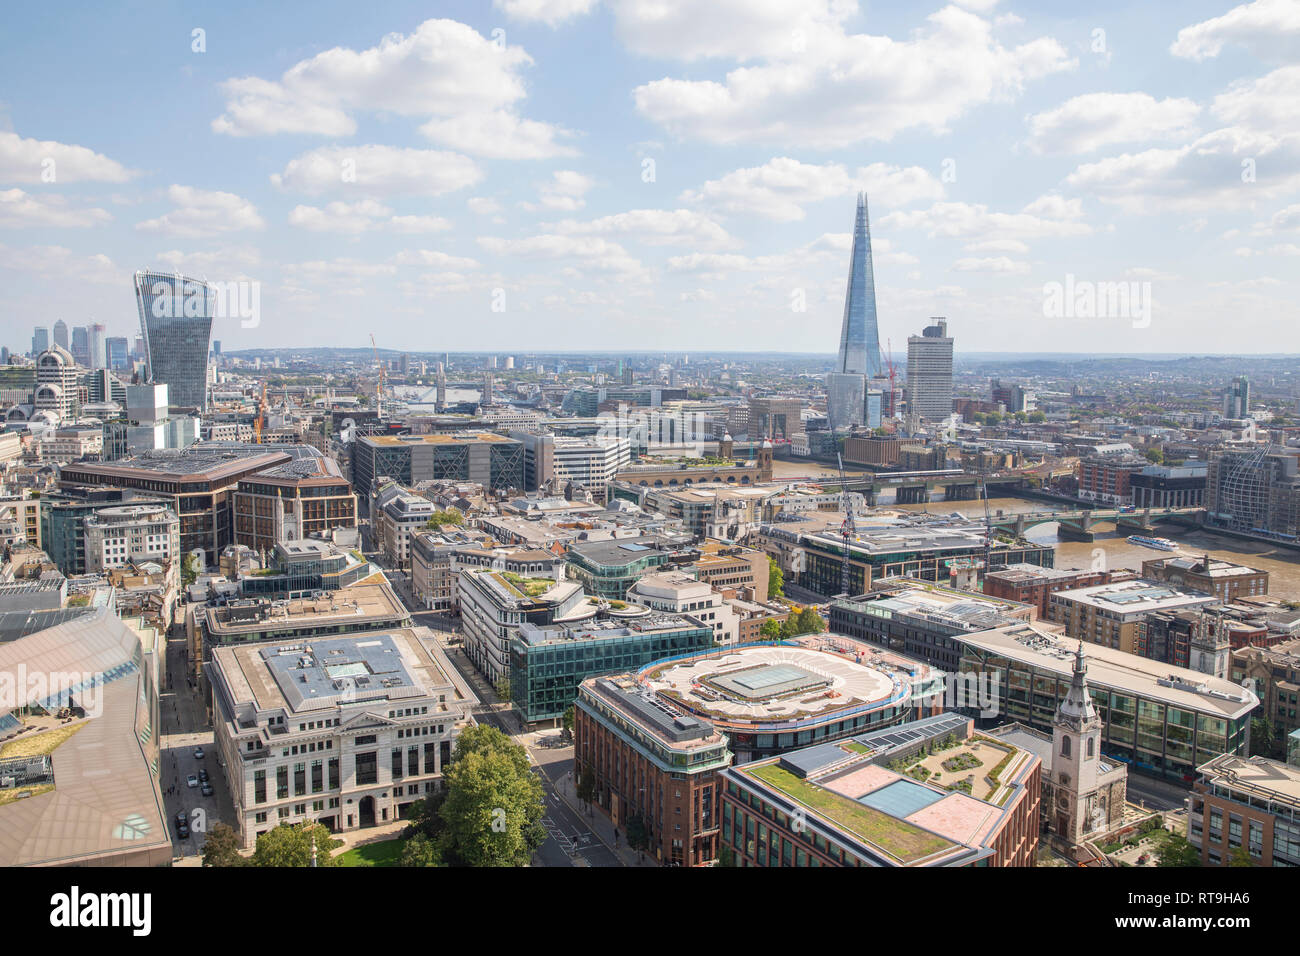 The Shard & 20 Fenchurch Street, as seen from the Golden Gallery of St. Paul's Cathedral. - Stock Image